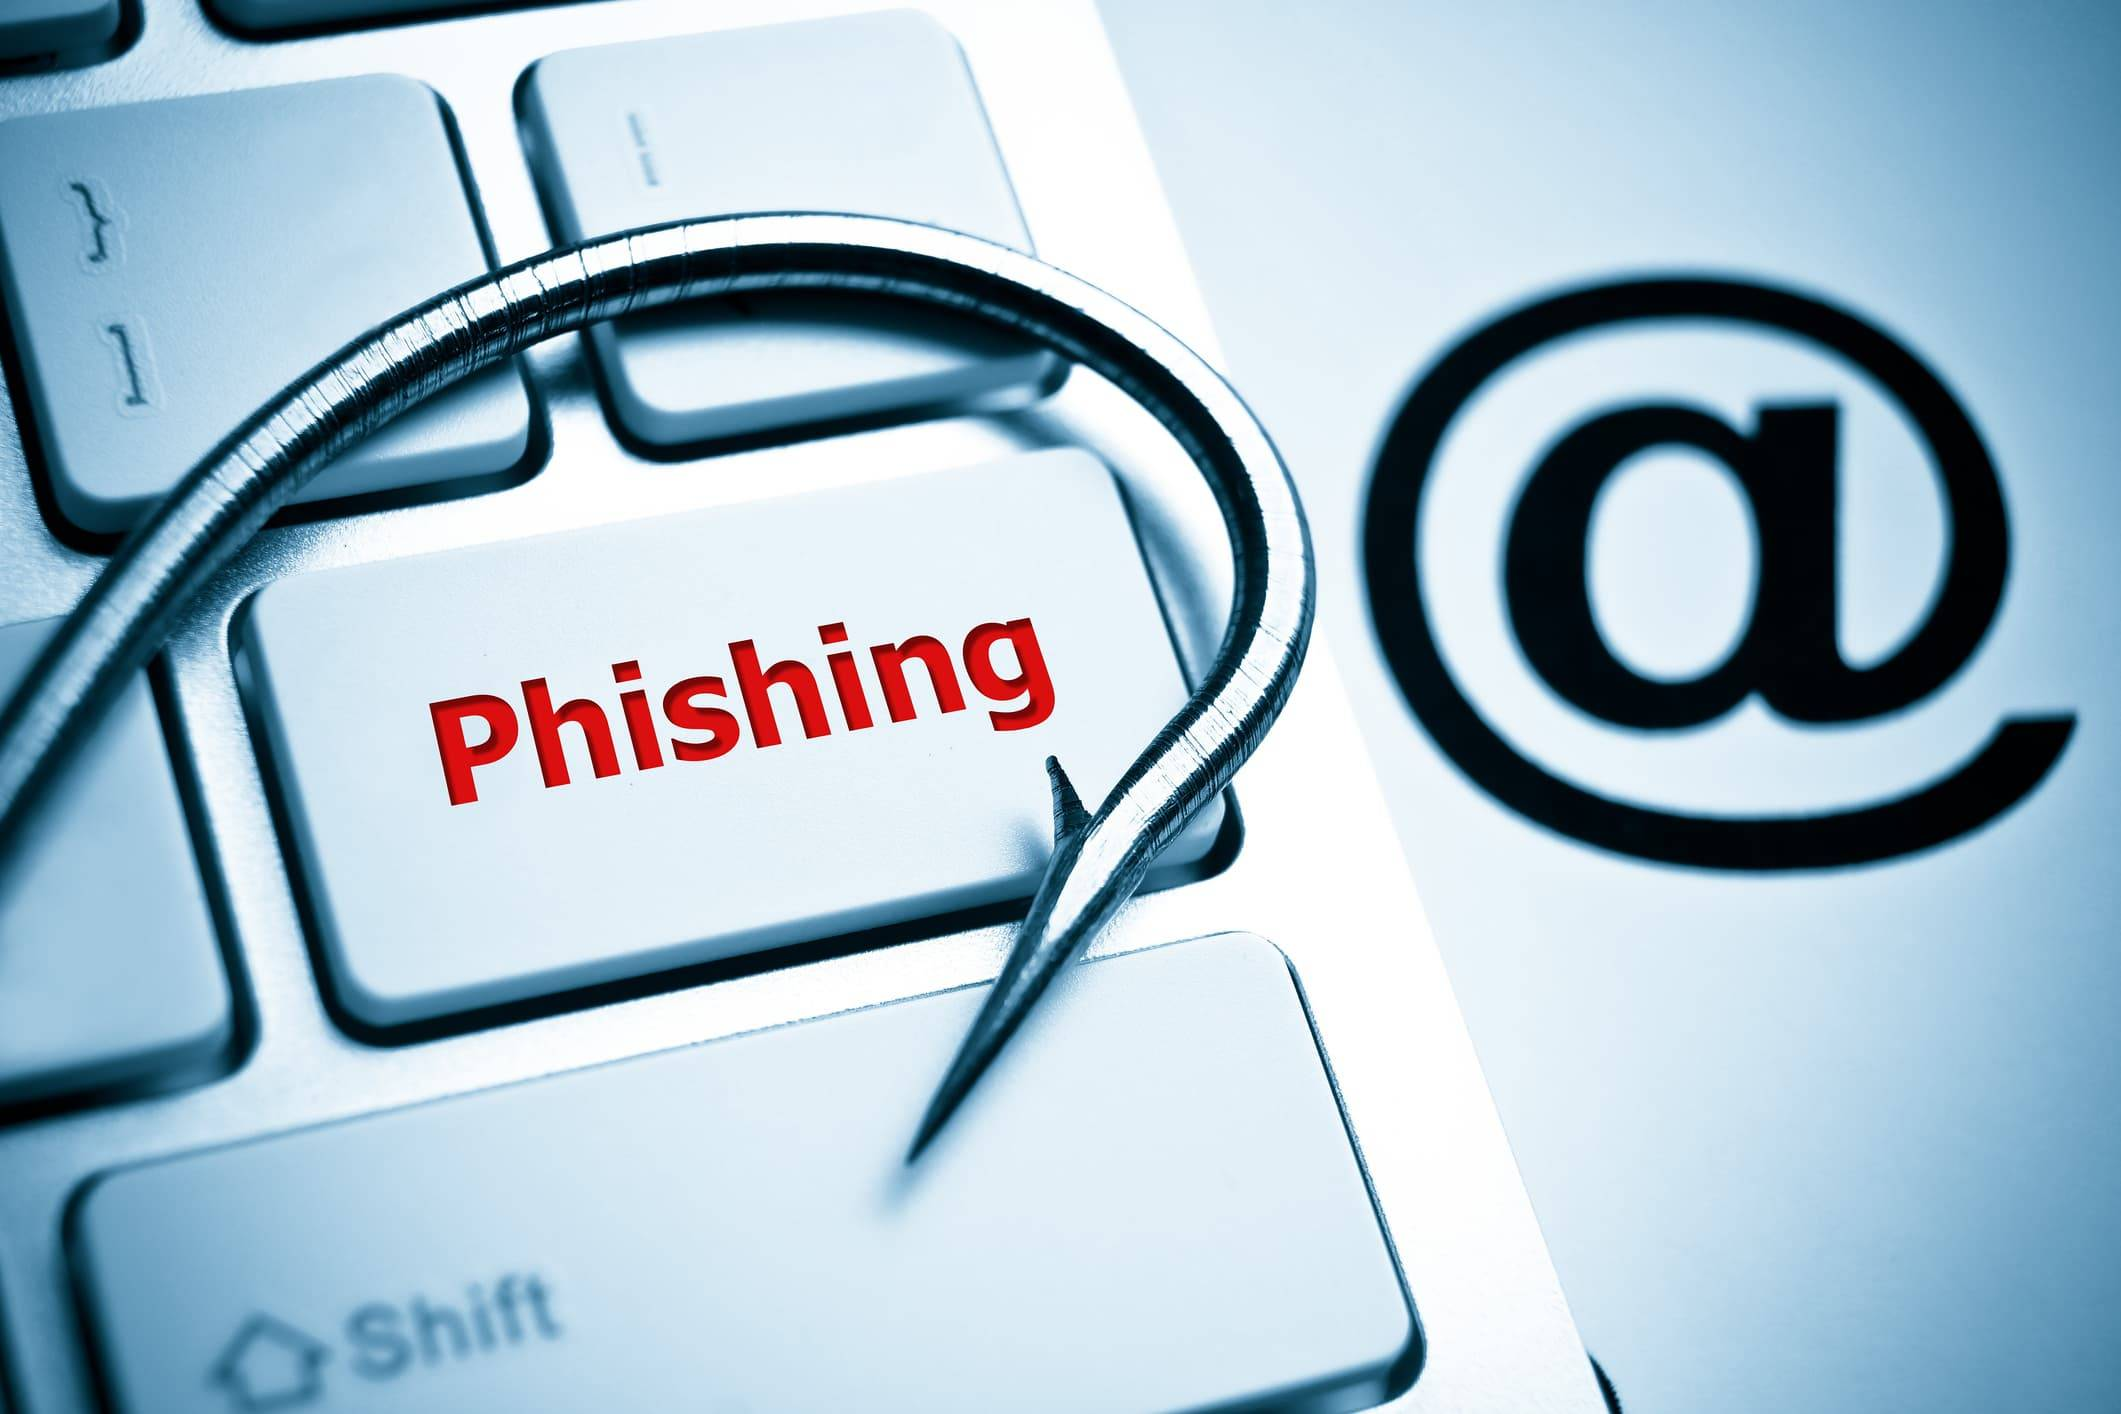 Phishing attacks on organisations rose to 83% during Covid-19 pandemic